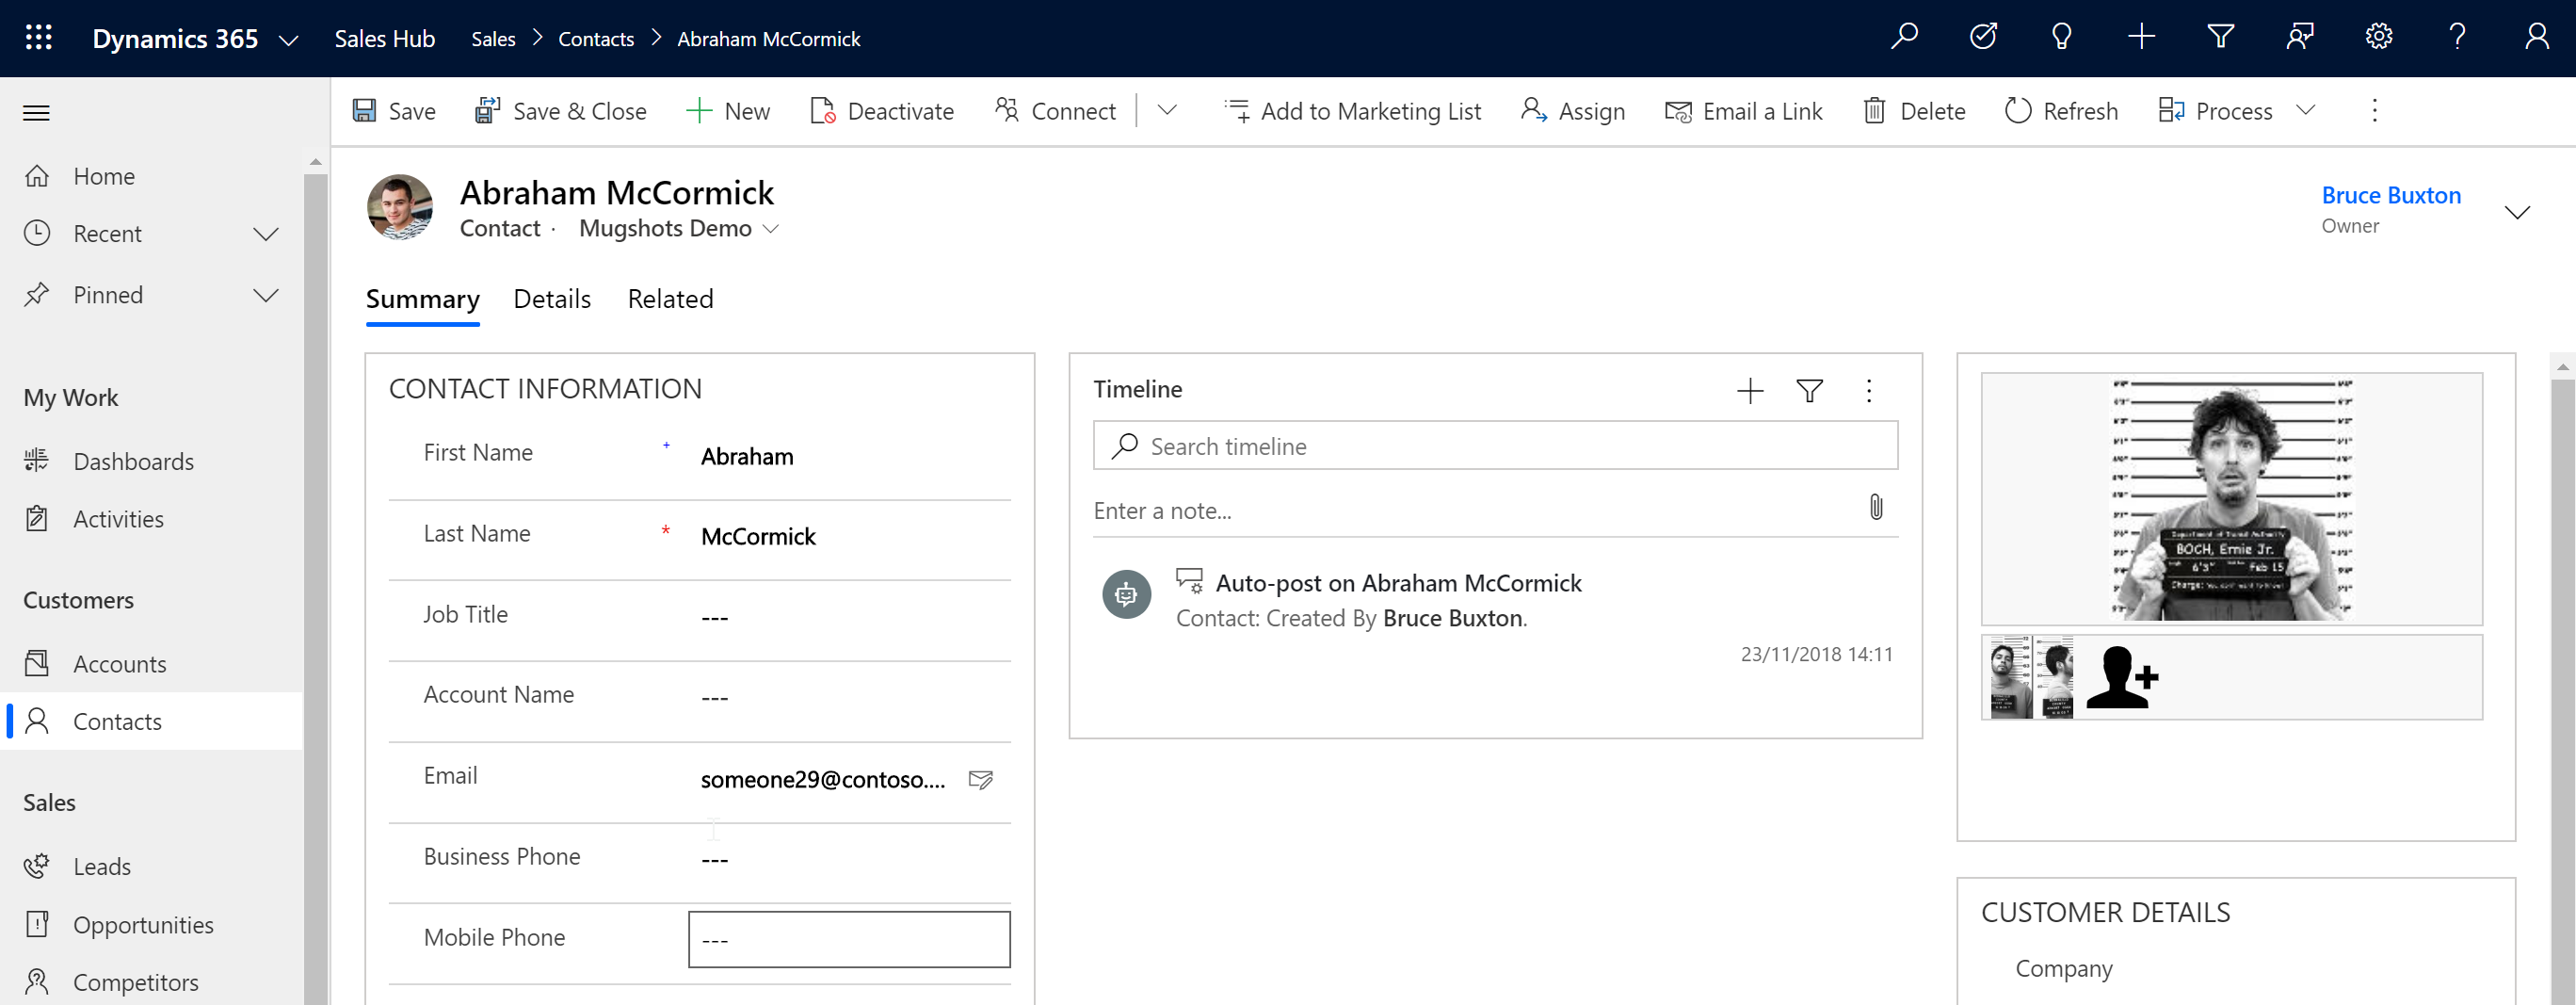 Quick Tile showing Secondary Image - North52 Business Rules Engine for Microsoft Dynamics 365